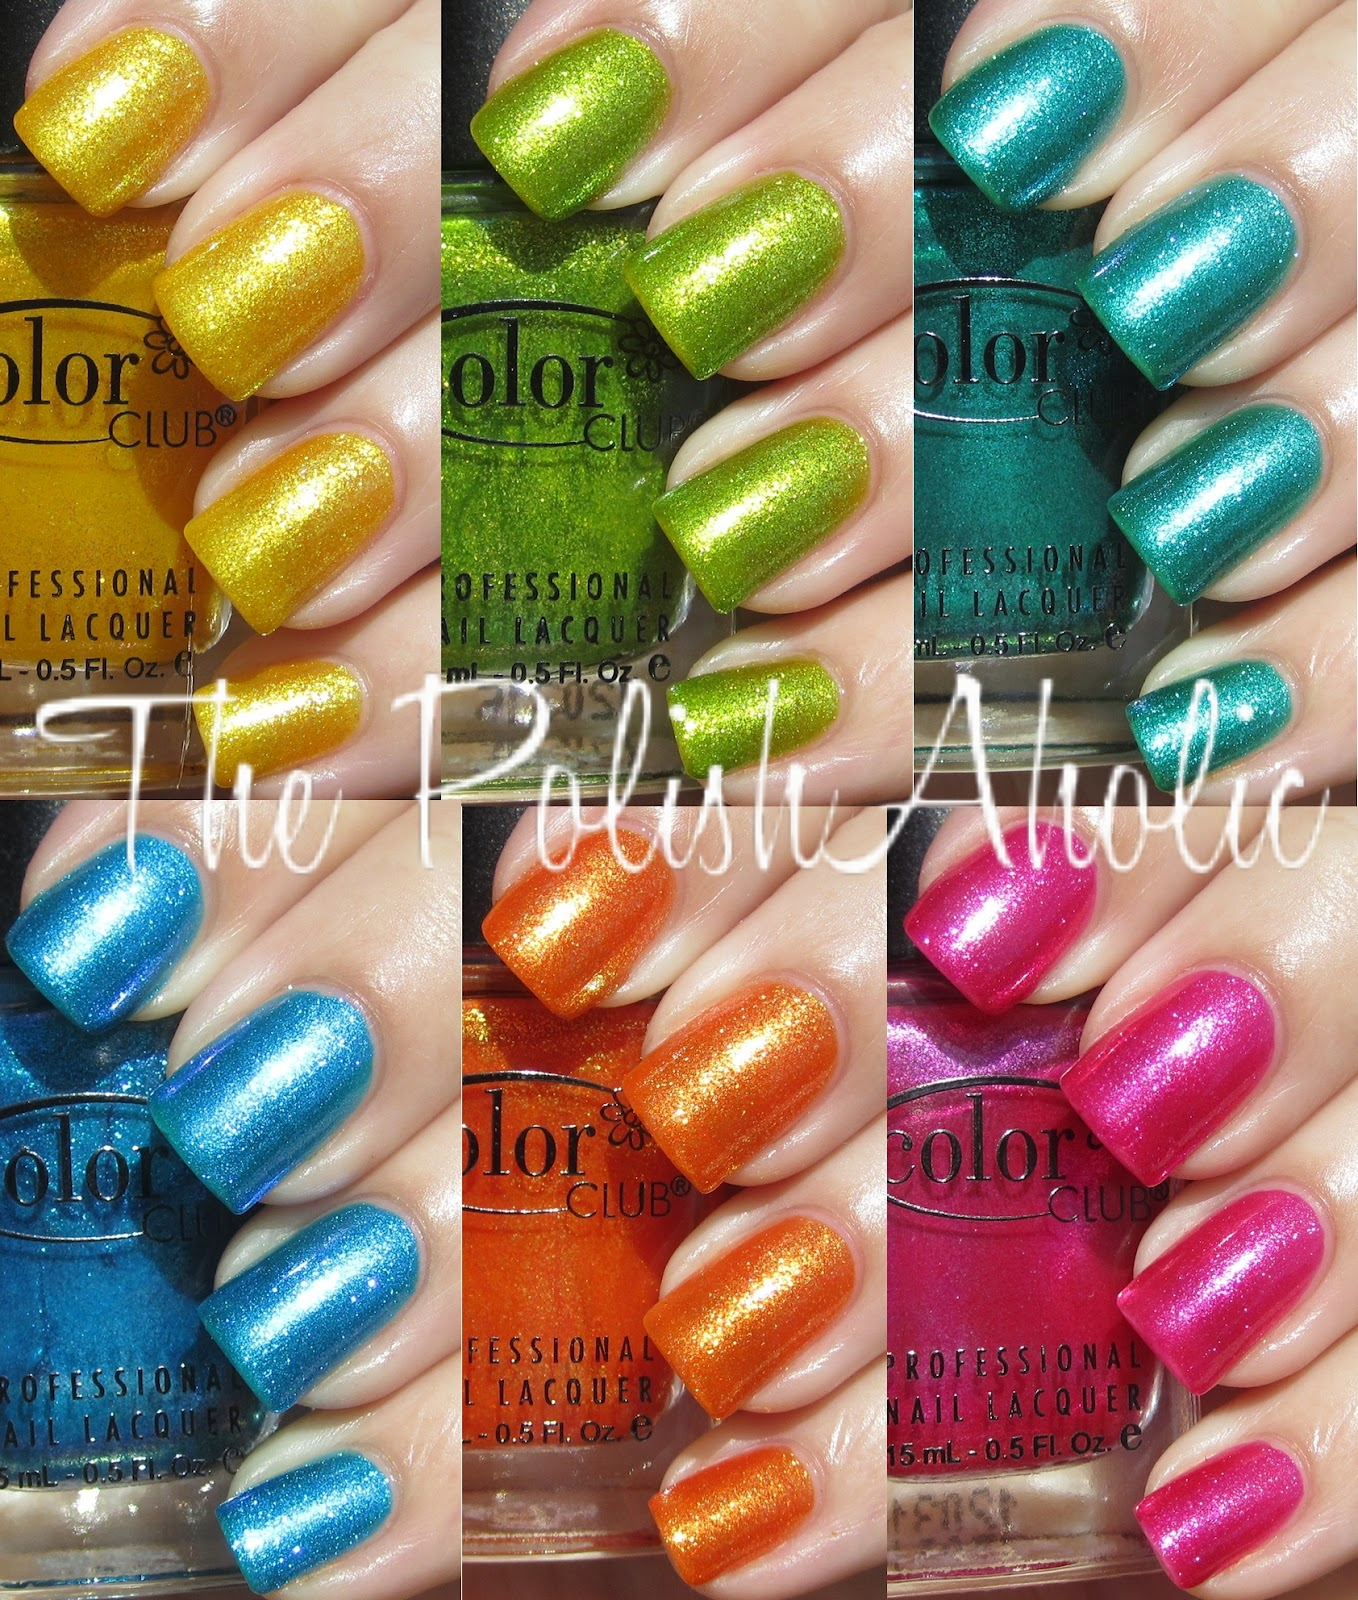 The PolishAholic: Color Club Summer 2012 Take Wing Collection Swatches!